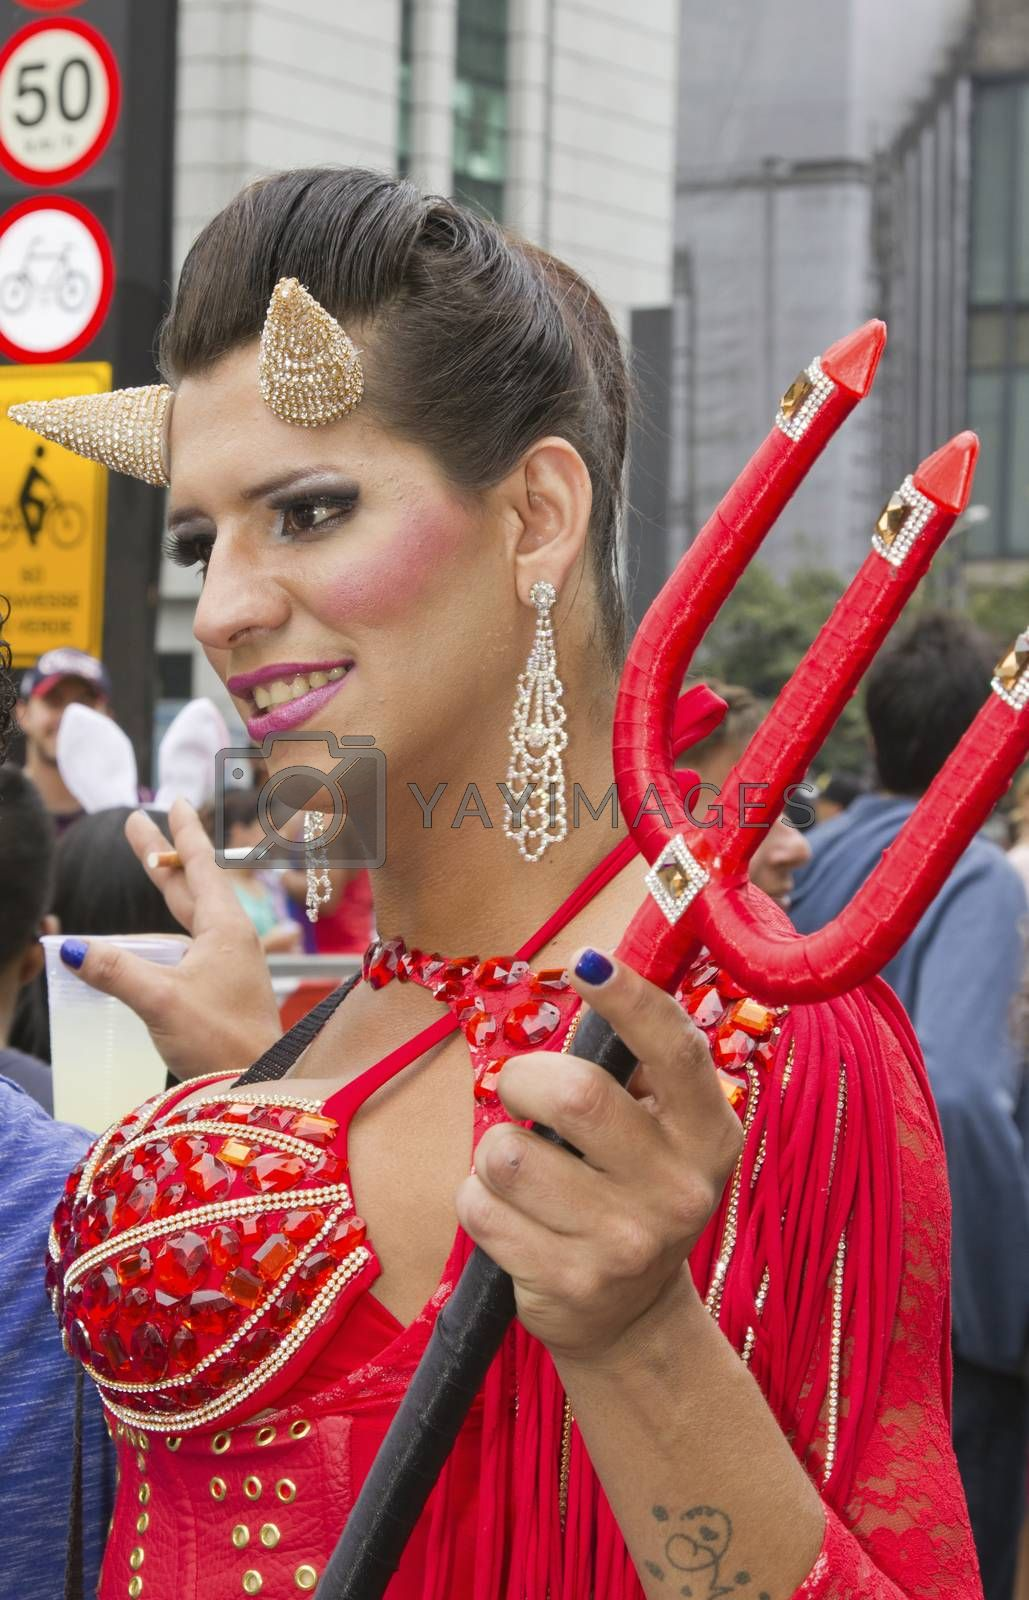 SAO PAULO, BRAZIL - June 7, 2015: An unidentified person  wearing costume and celebrating lesbian, gay, bisexual, and transgender culture in the 19º Pride Parade Sao Paulo.